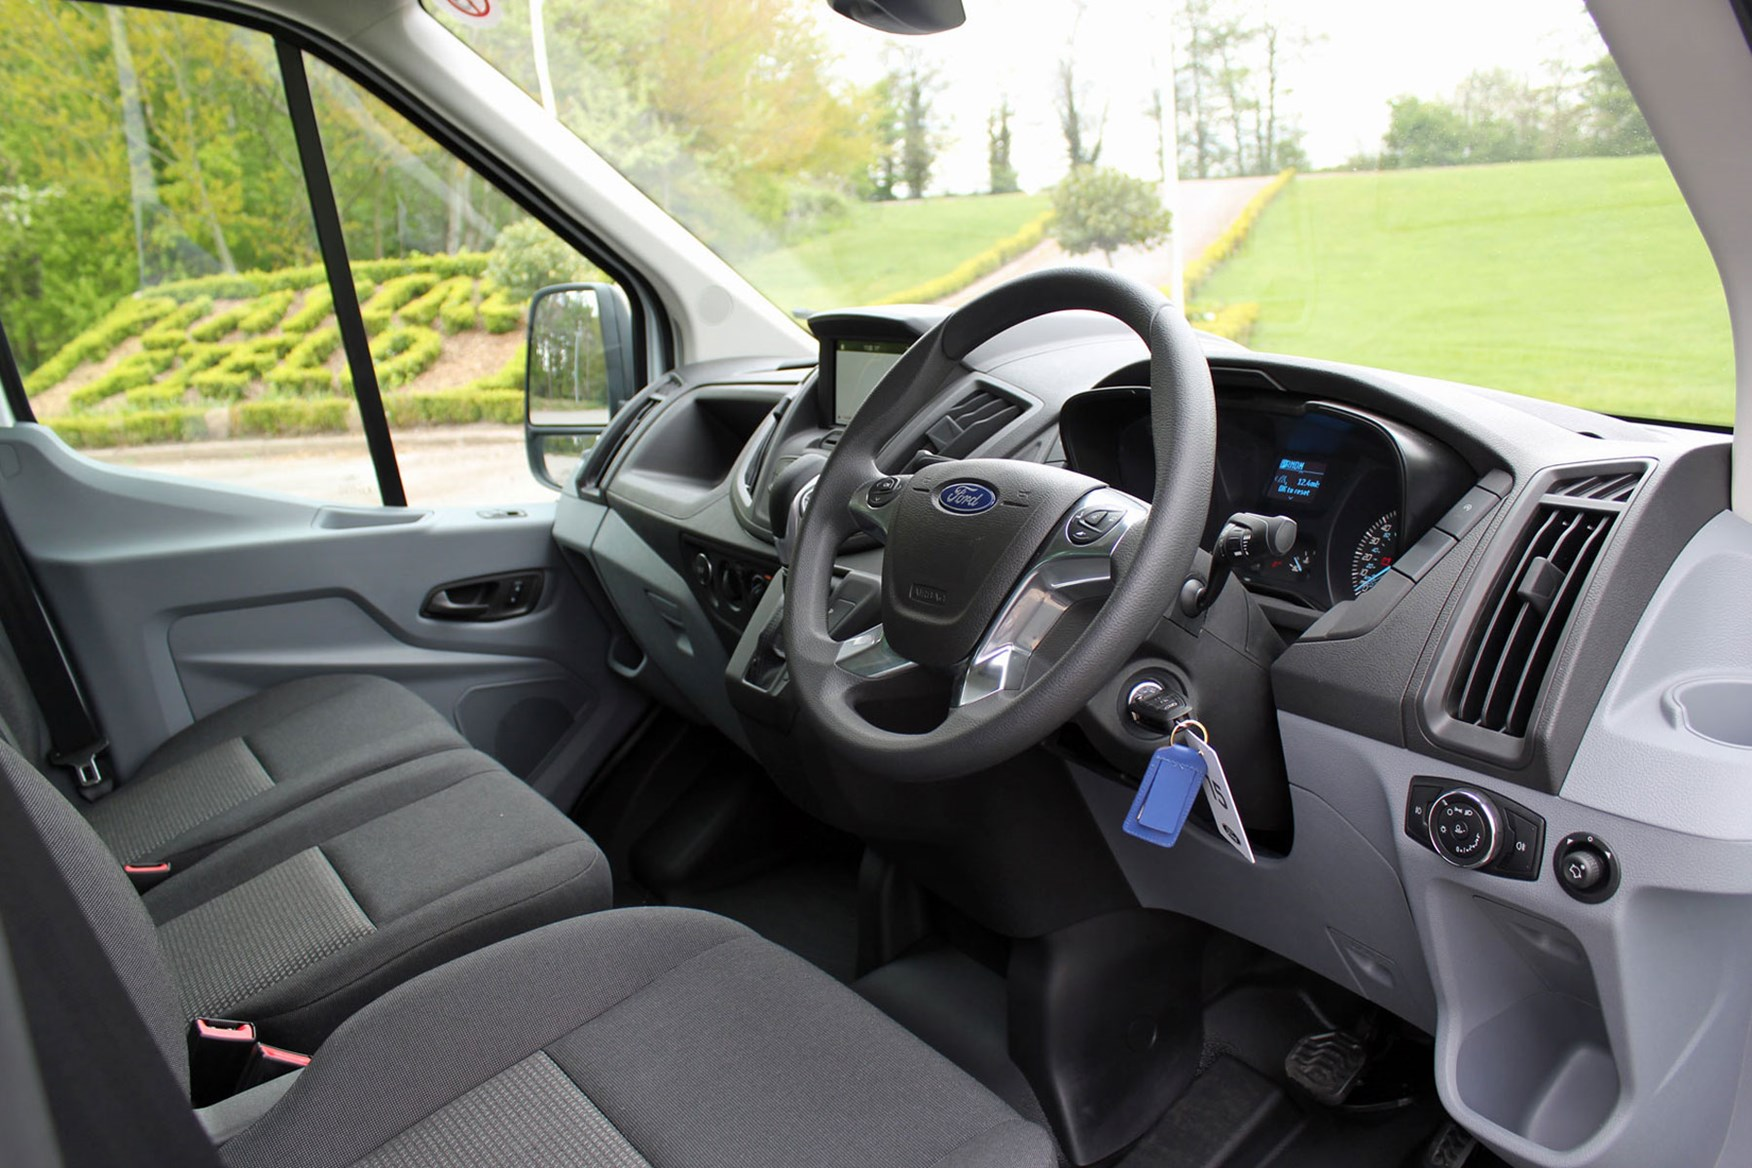 Ford Transit Luton review - steering wheel and cab interior